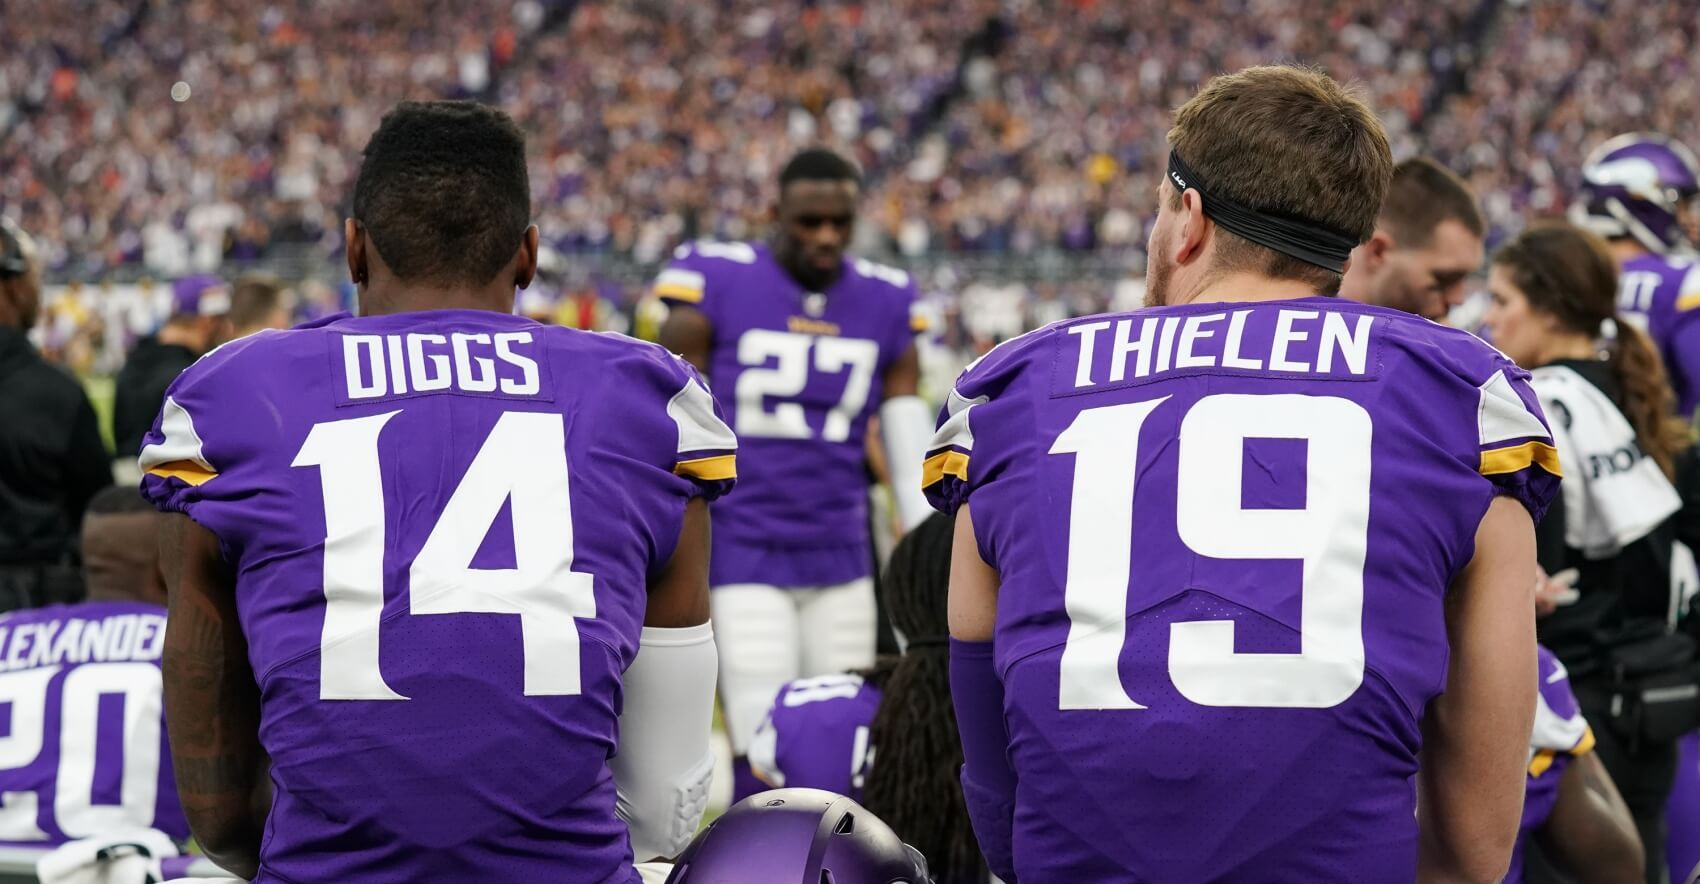 Figuring Out the Thielen and Diggs Fantasy Football Conundrum